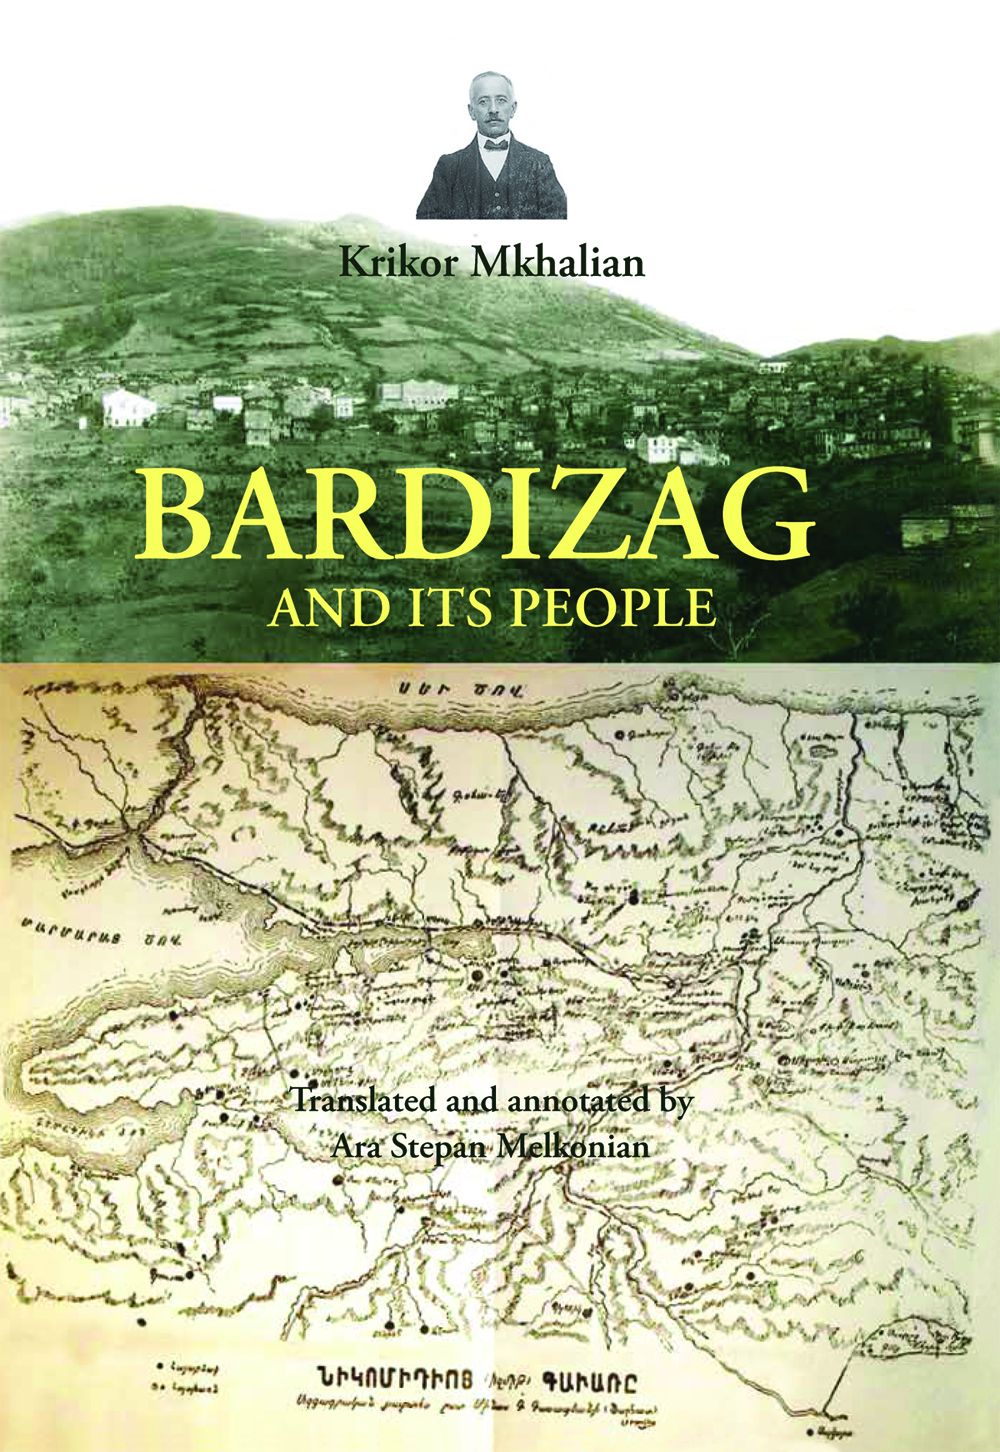 Bardizag and its People